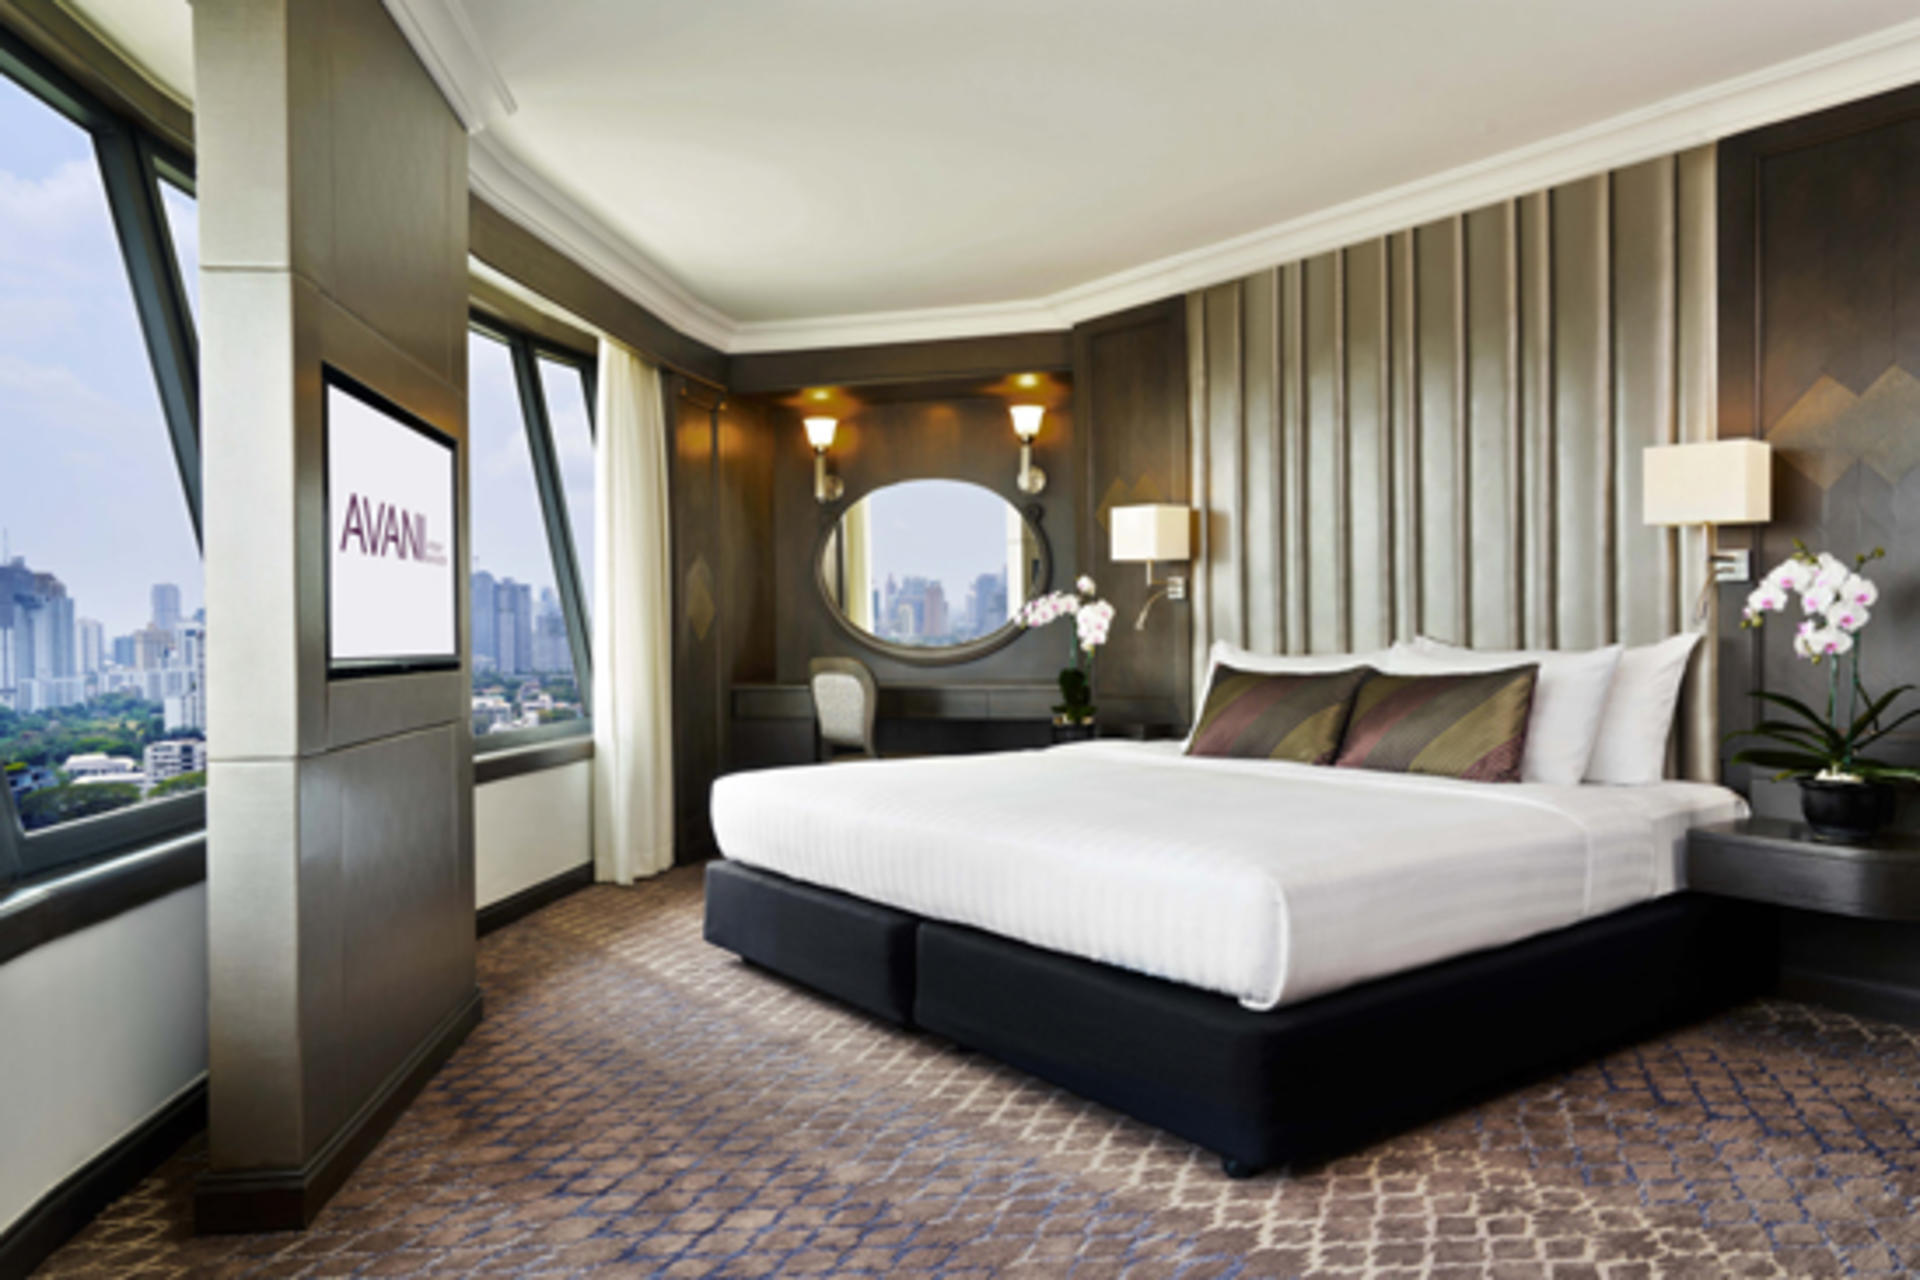 AVANI Atrium Grand Executive Suite